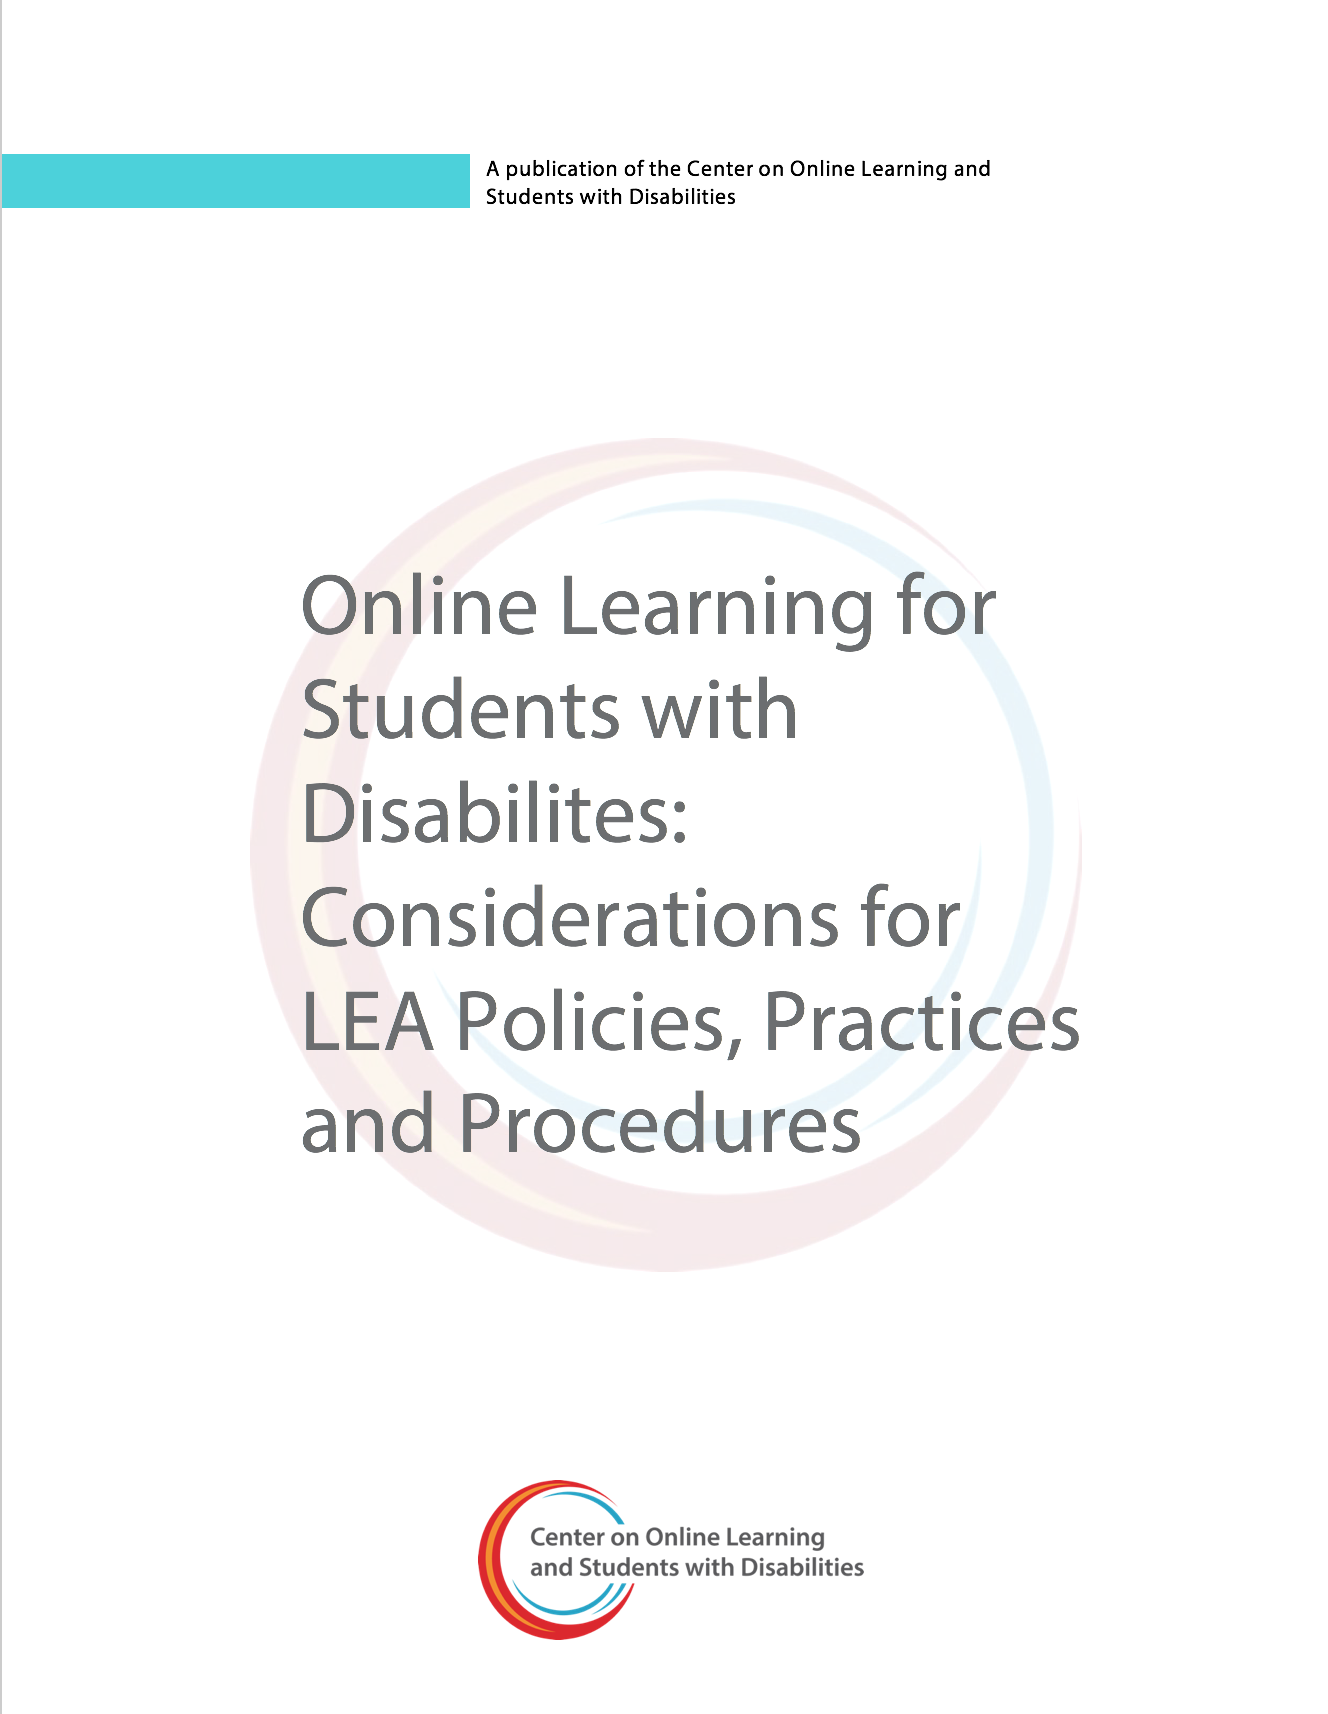 Online Learning For Students With Disabilities: Considerations For LEA Policies, Practices, And Procedures